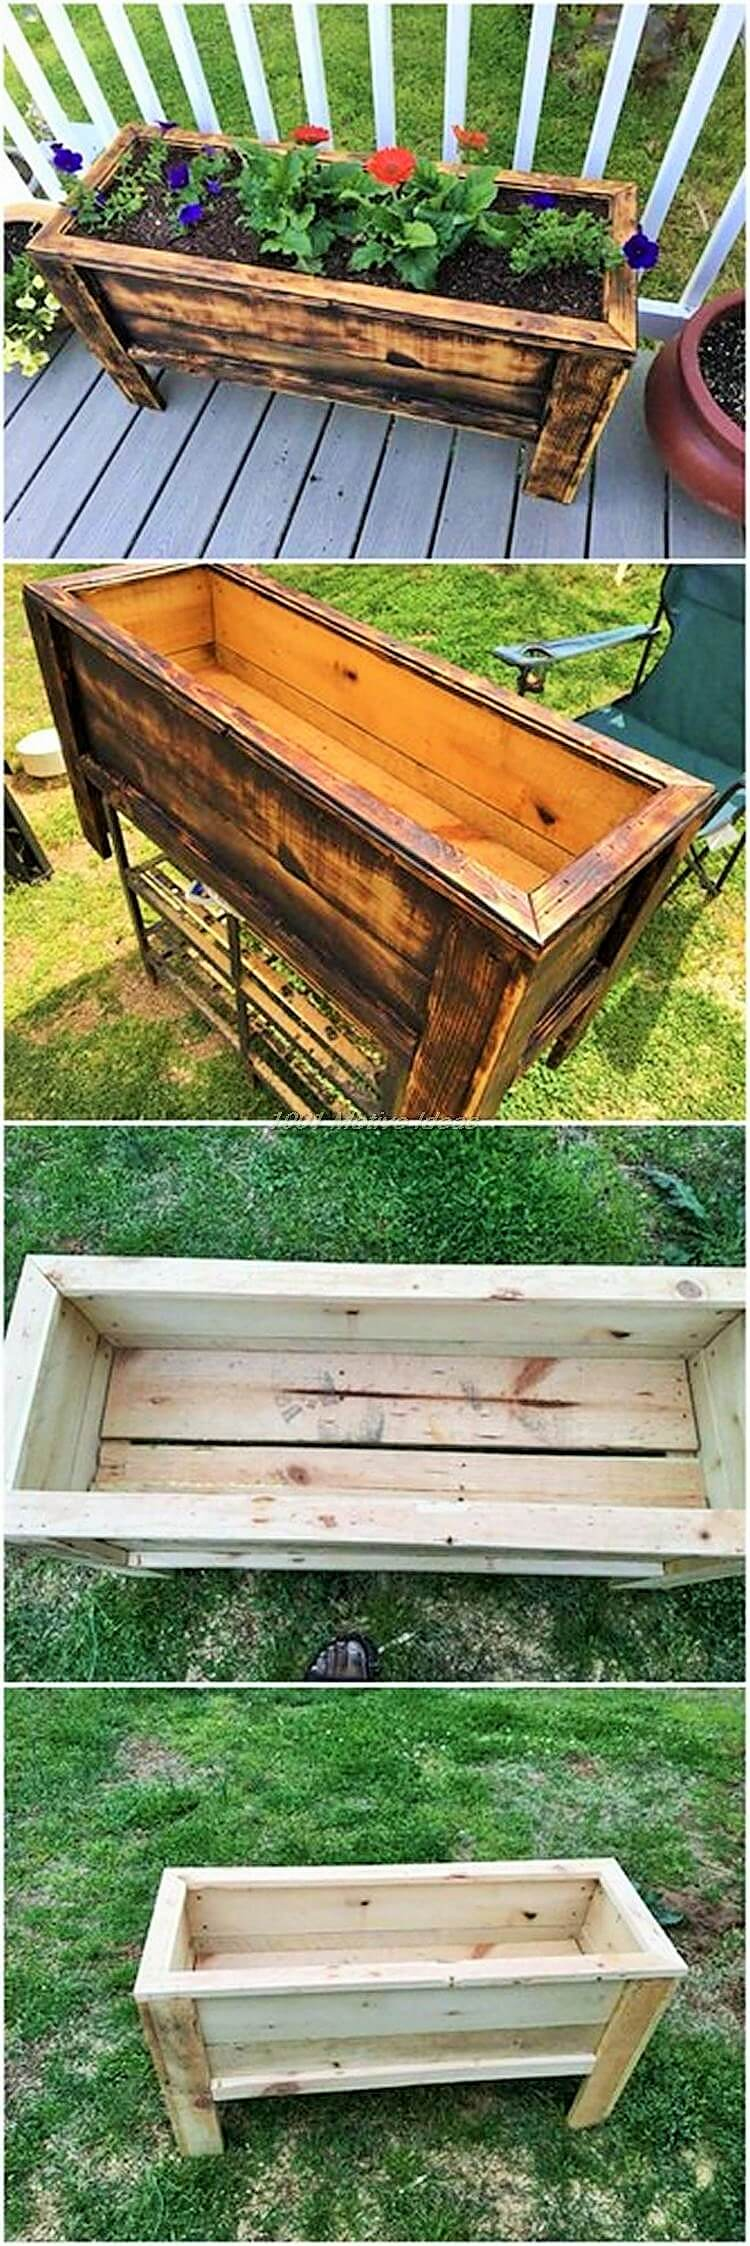 wooden-Pallet-Banch-furniture-Project-Ideas-003